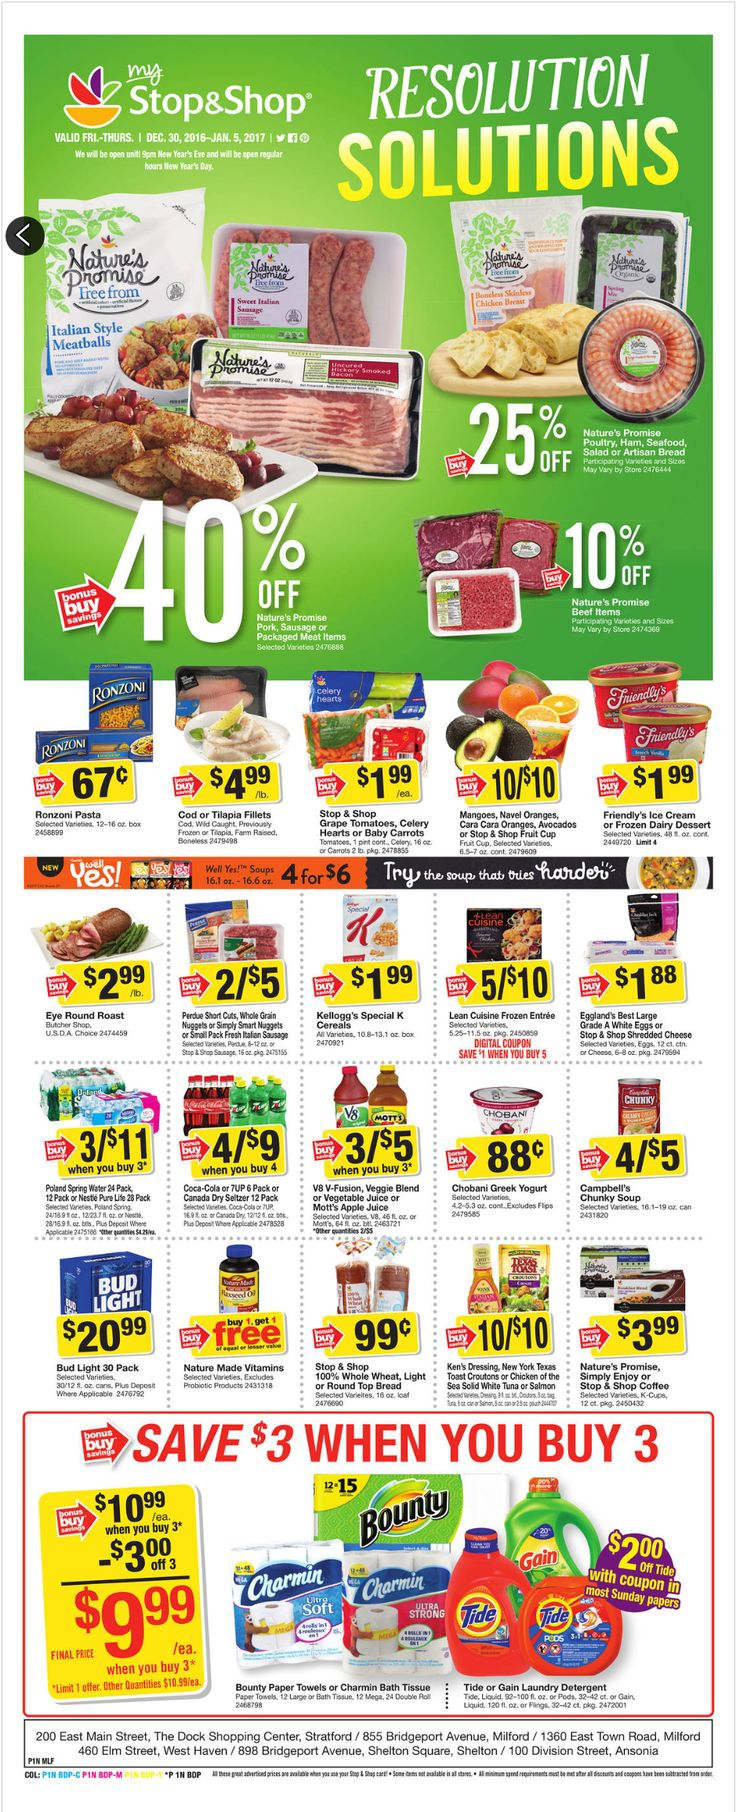 Stop and Shop Circular December 30 - January 5, 2017 - http://www.olcatalog.com/grocery/stop-and-shop-circular.html